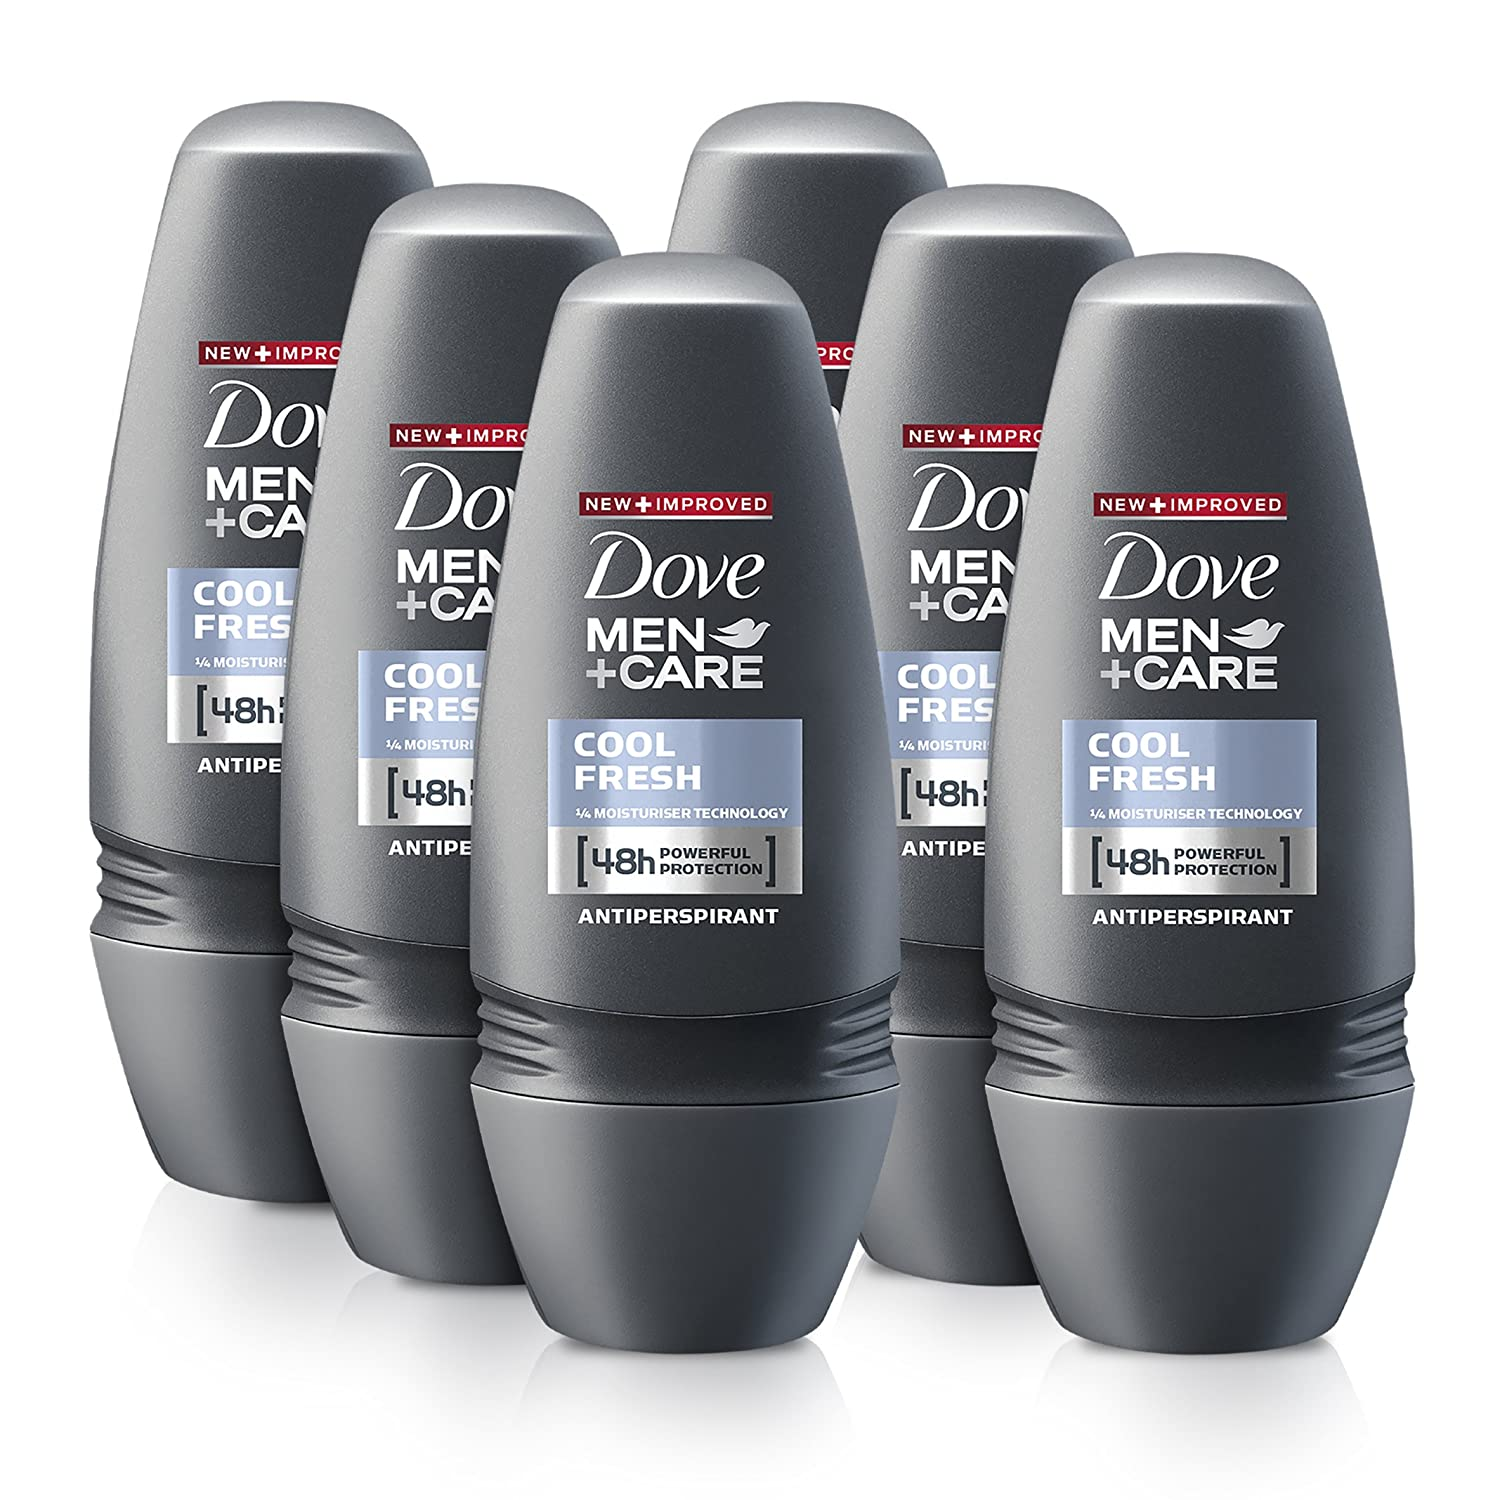 c9cab18e5 Dove Men Cool Fresh Anti-Perspirant Deodorant Roll-On 50 ml - Pack of 6. by  Dove Men + Care